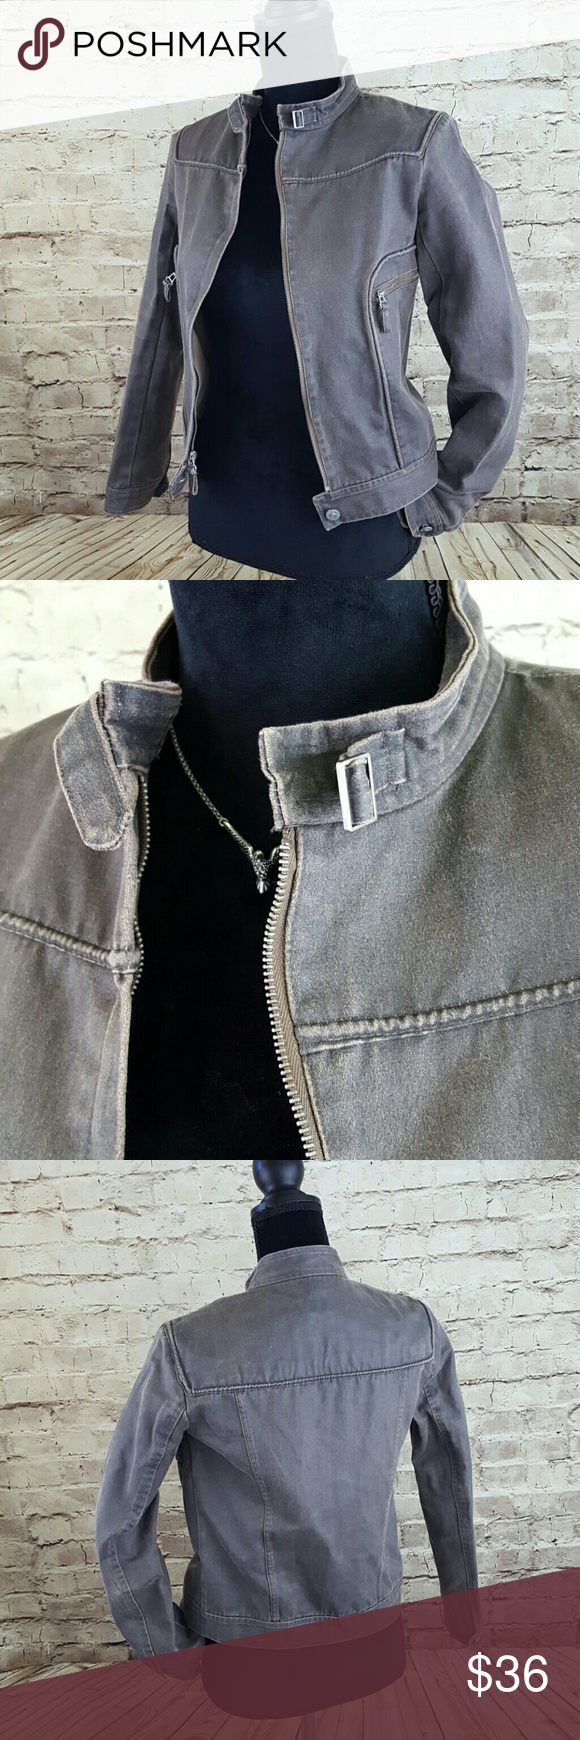 MAX JEANS Motor Jacket Cute! This fabric moto jacket has the look of distressed leather even down to the corded, rolled seams. Brownish grey cast to it. Full zip with logo button at the bottom. Strap and buckle closure at neck. Two zippered pockets with fobs. Awesome little jacket in very nice used condition. 55% cotton/45% polyester. Dry clean. I ship fast. Max Jeans Jackets & Coats